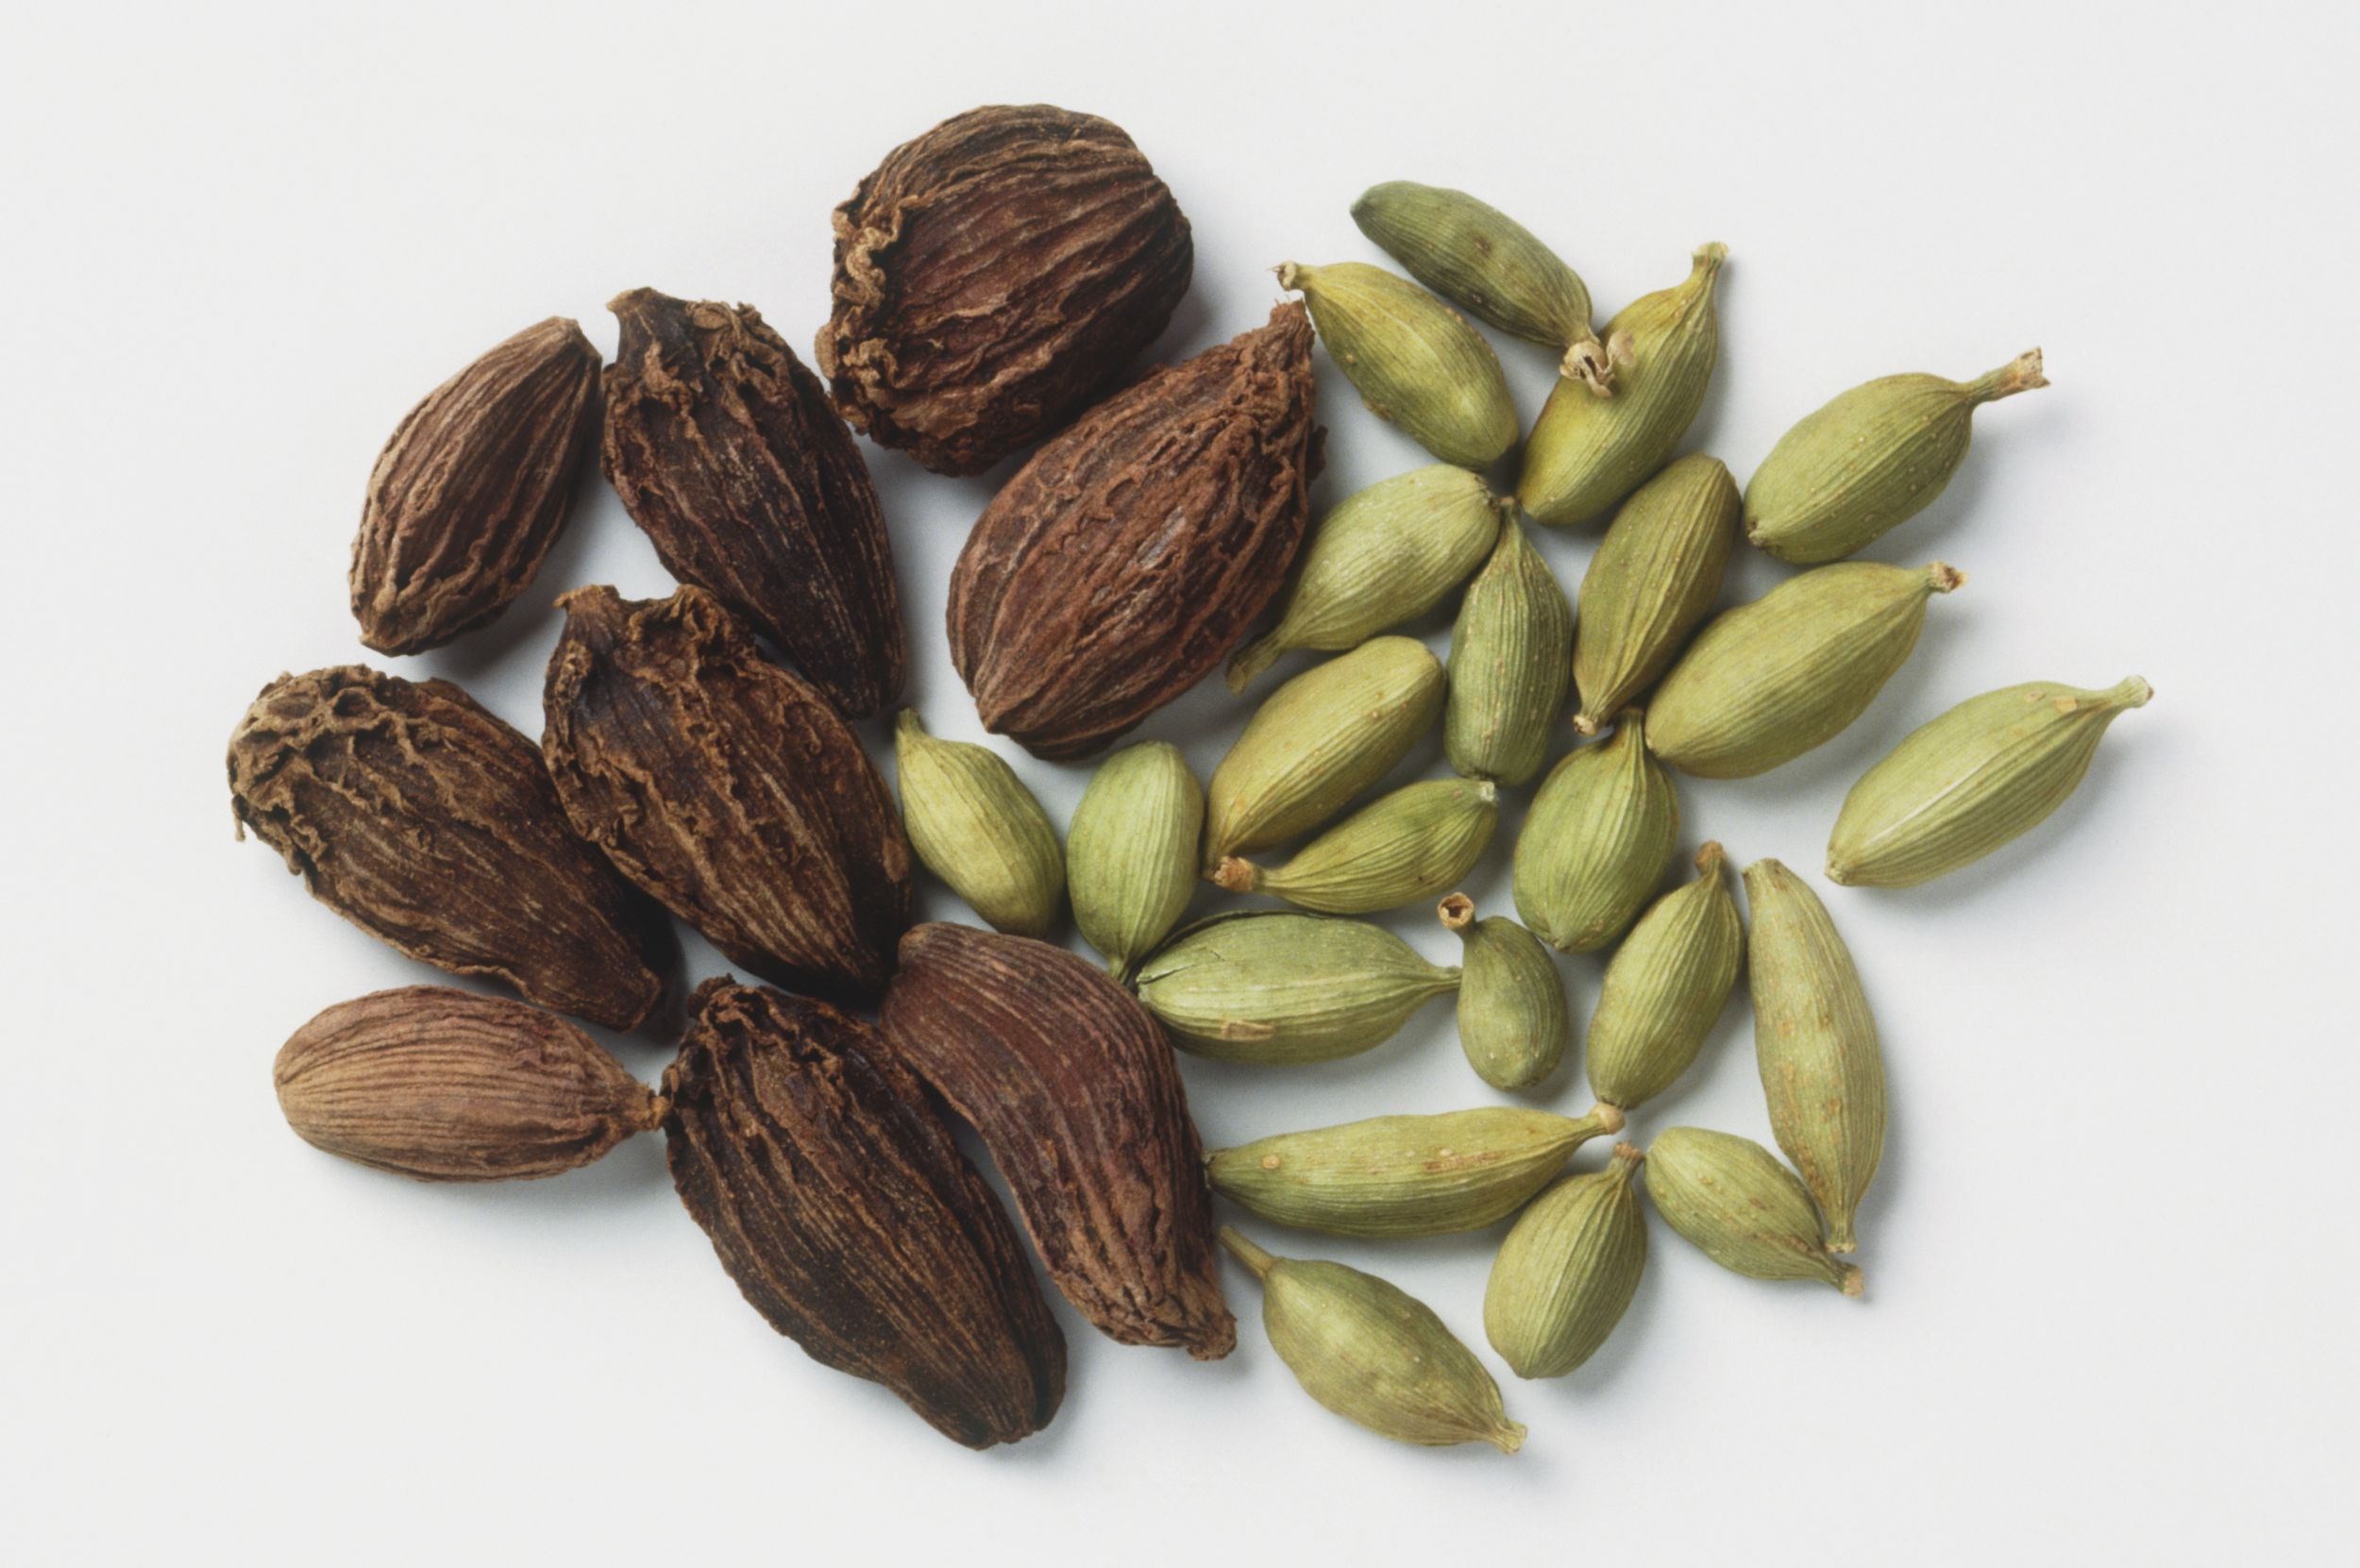 What Is Cardamom Spice and How Is It Used?